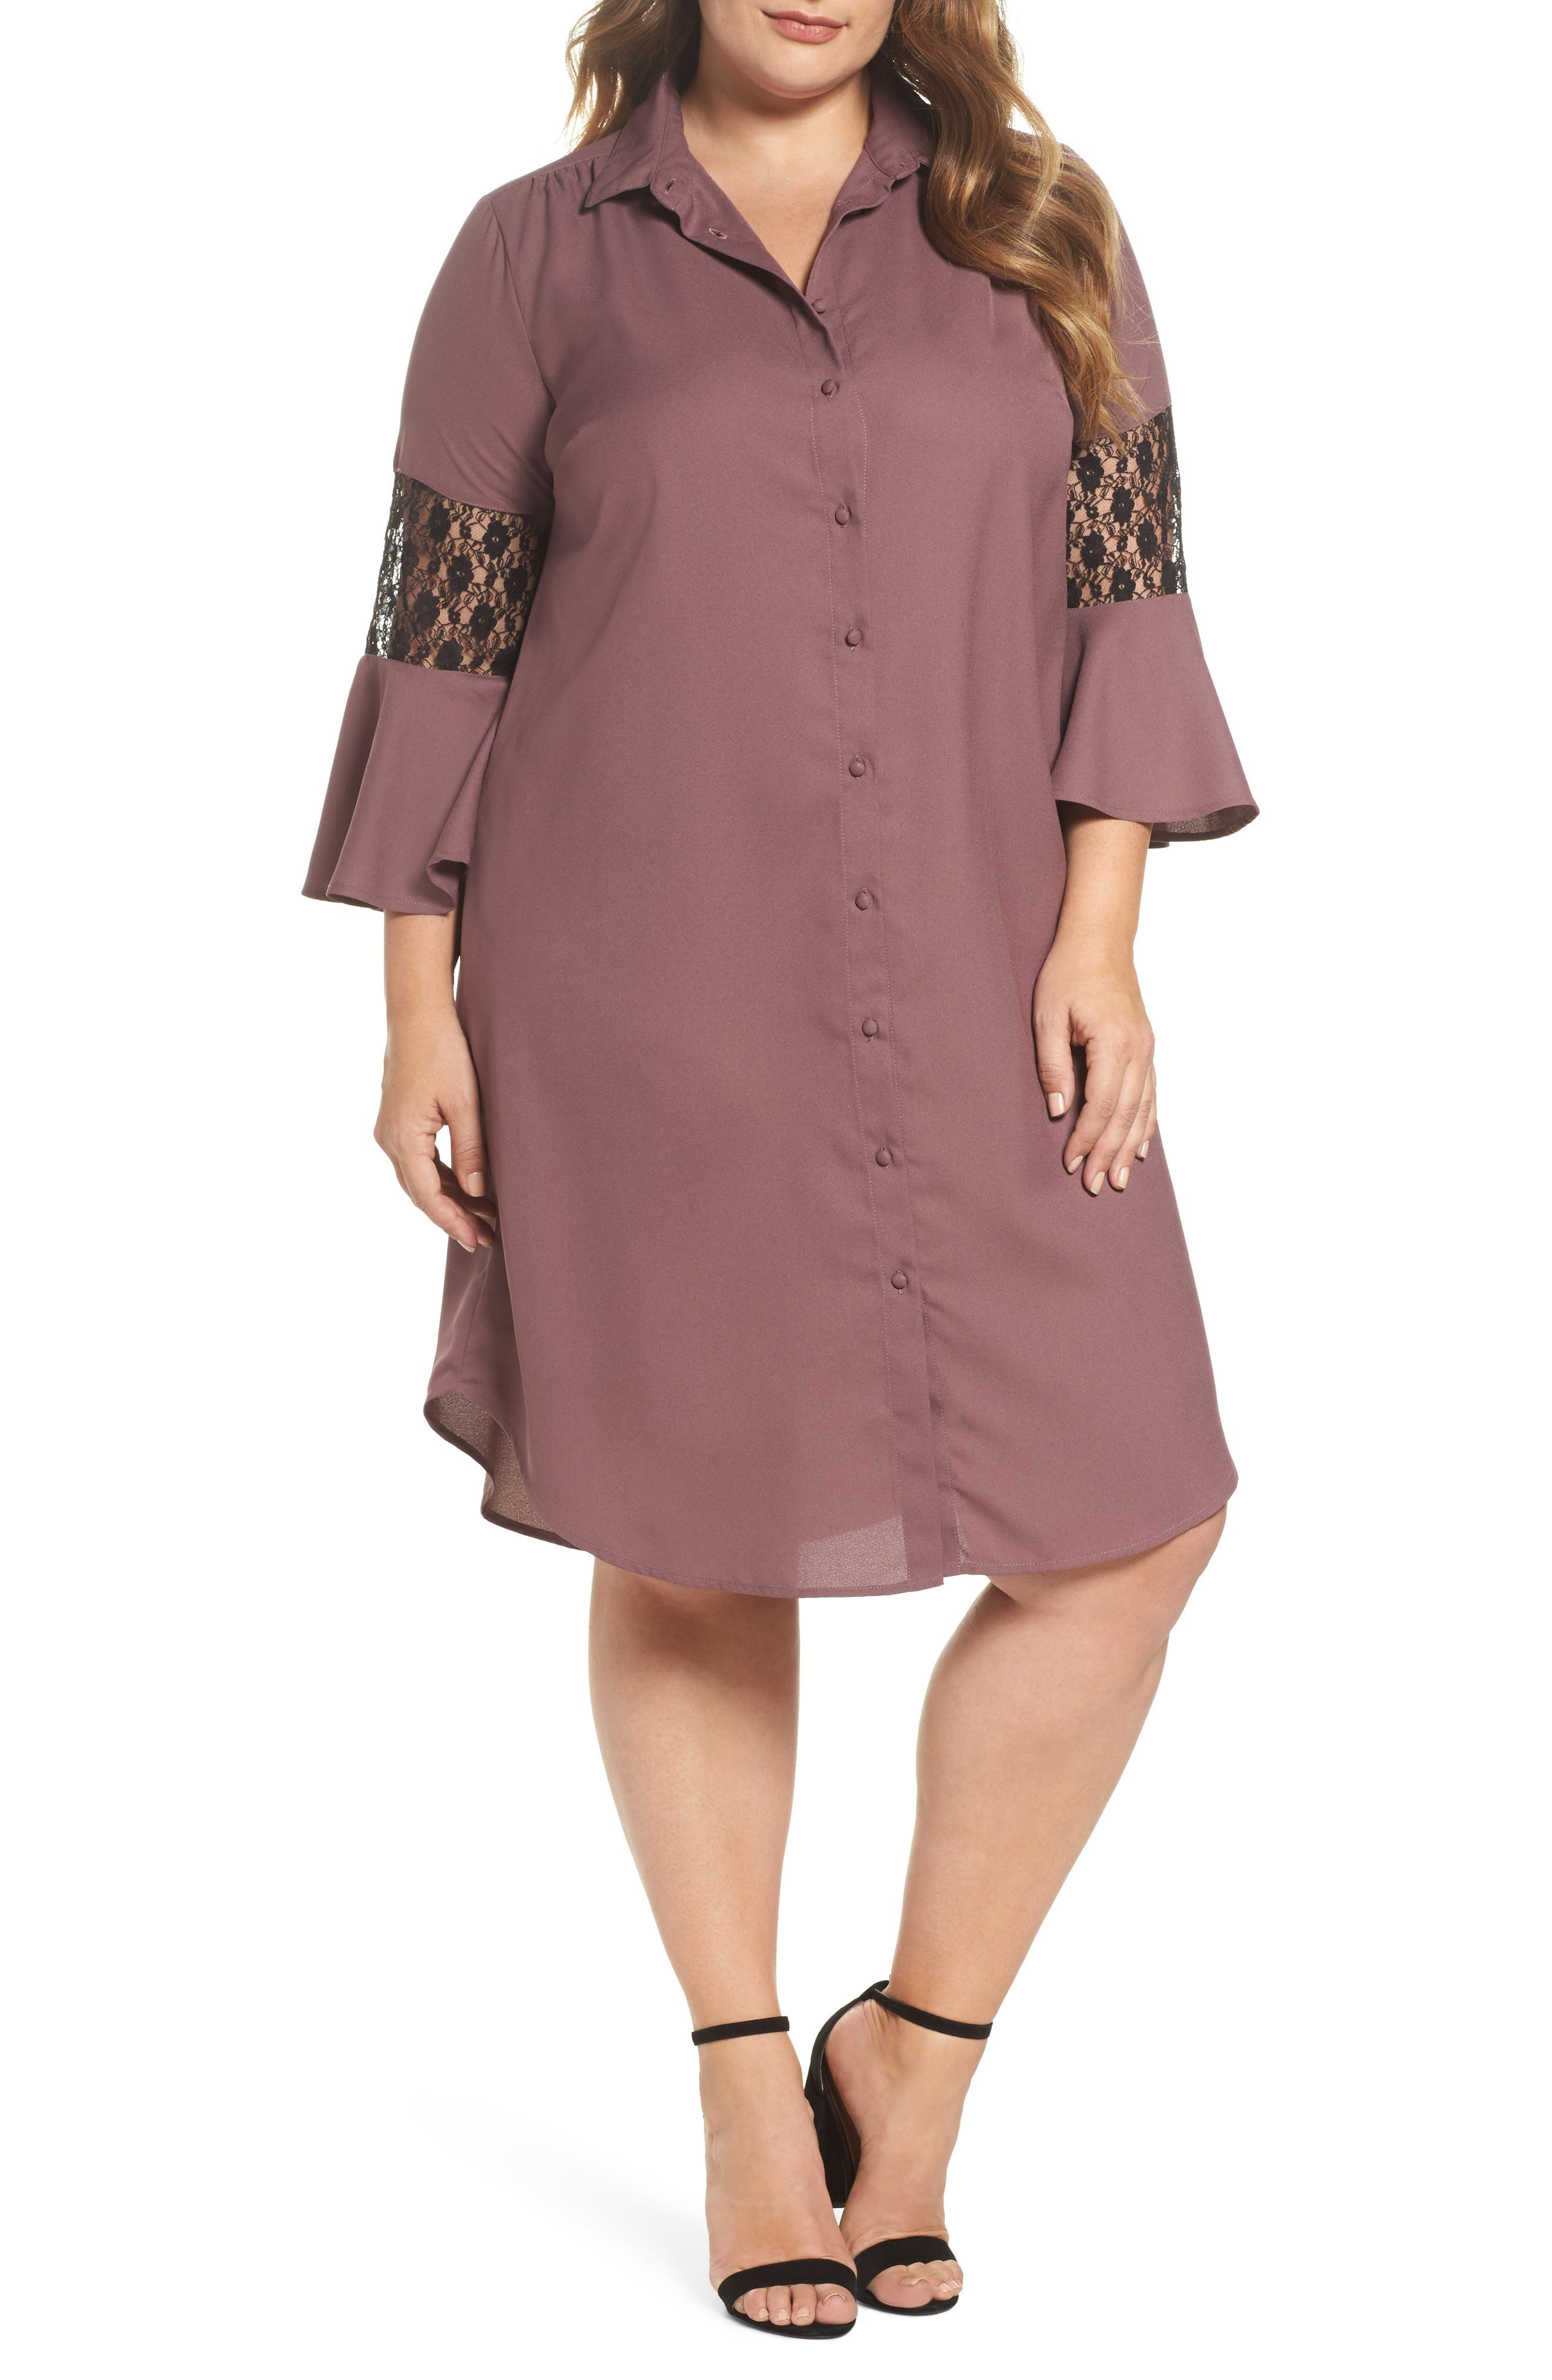 Alternate Image 1 Selected - LOST INK Lace Inset Shirtdress (Plus Size)